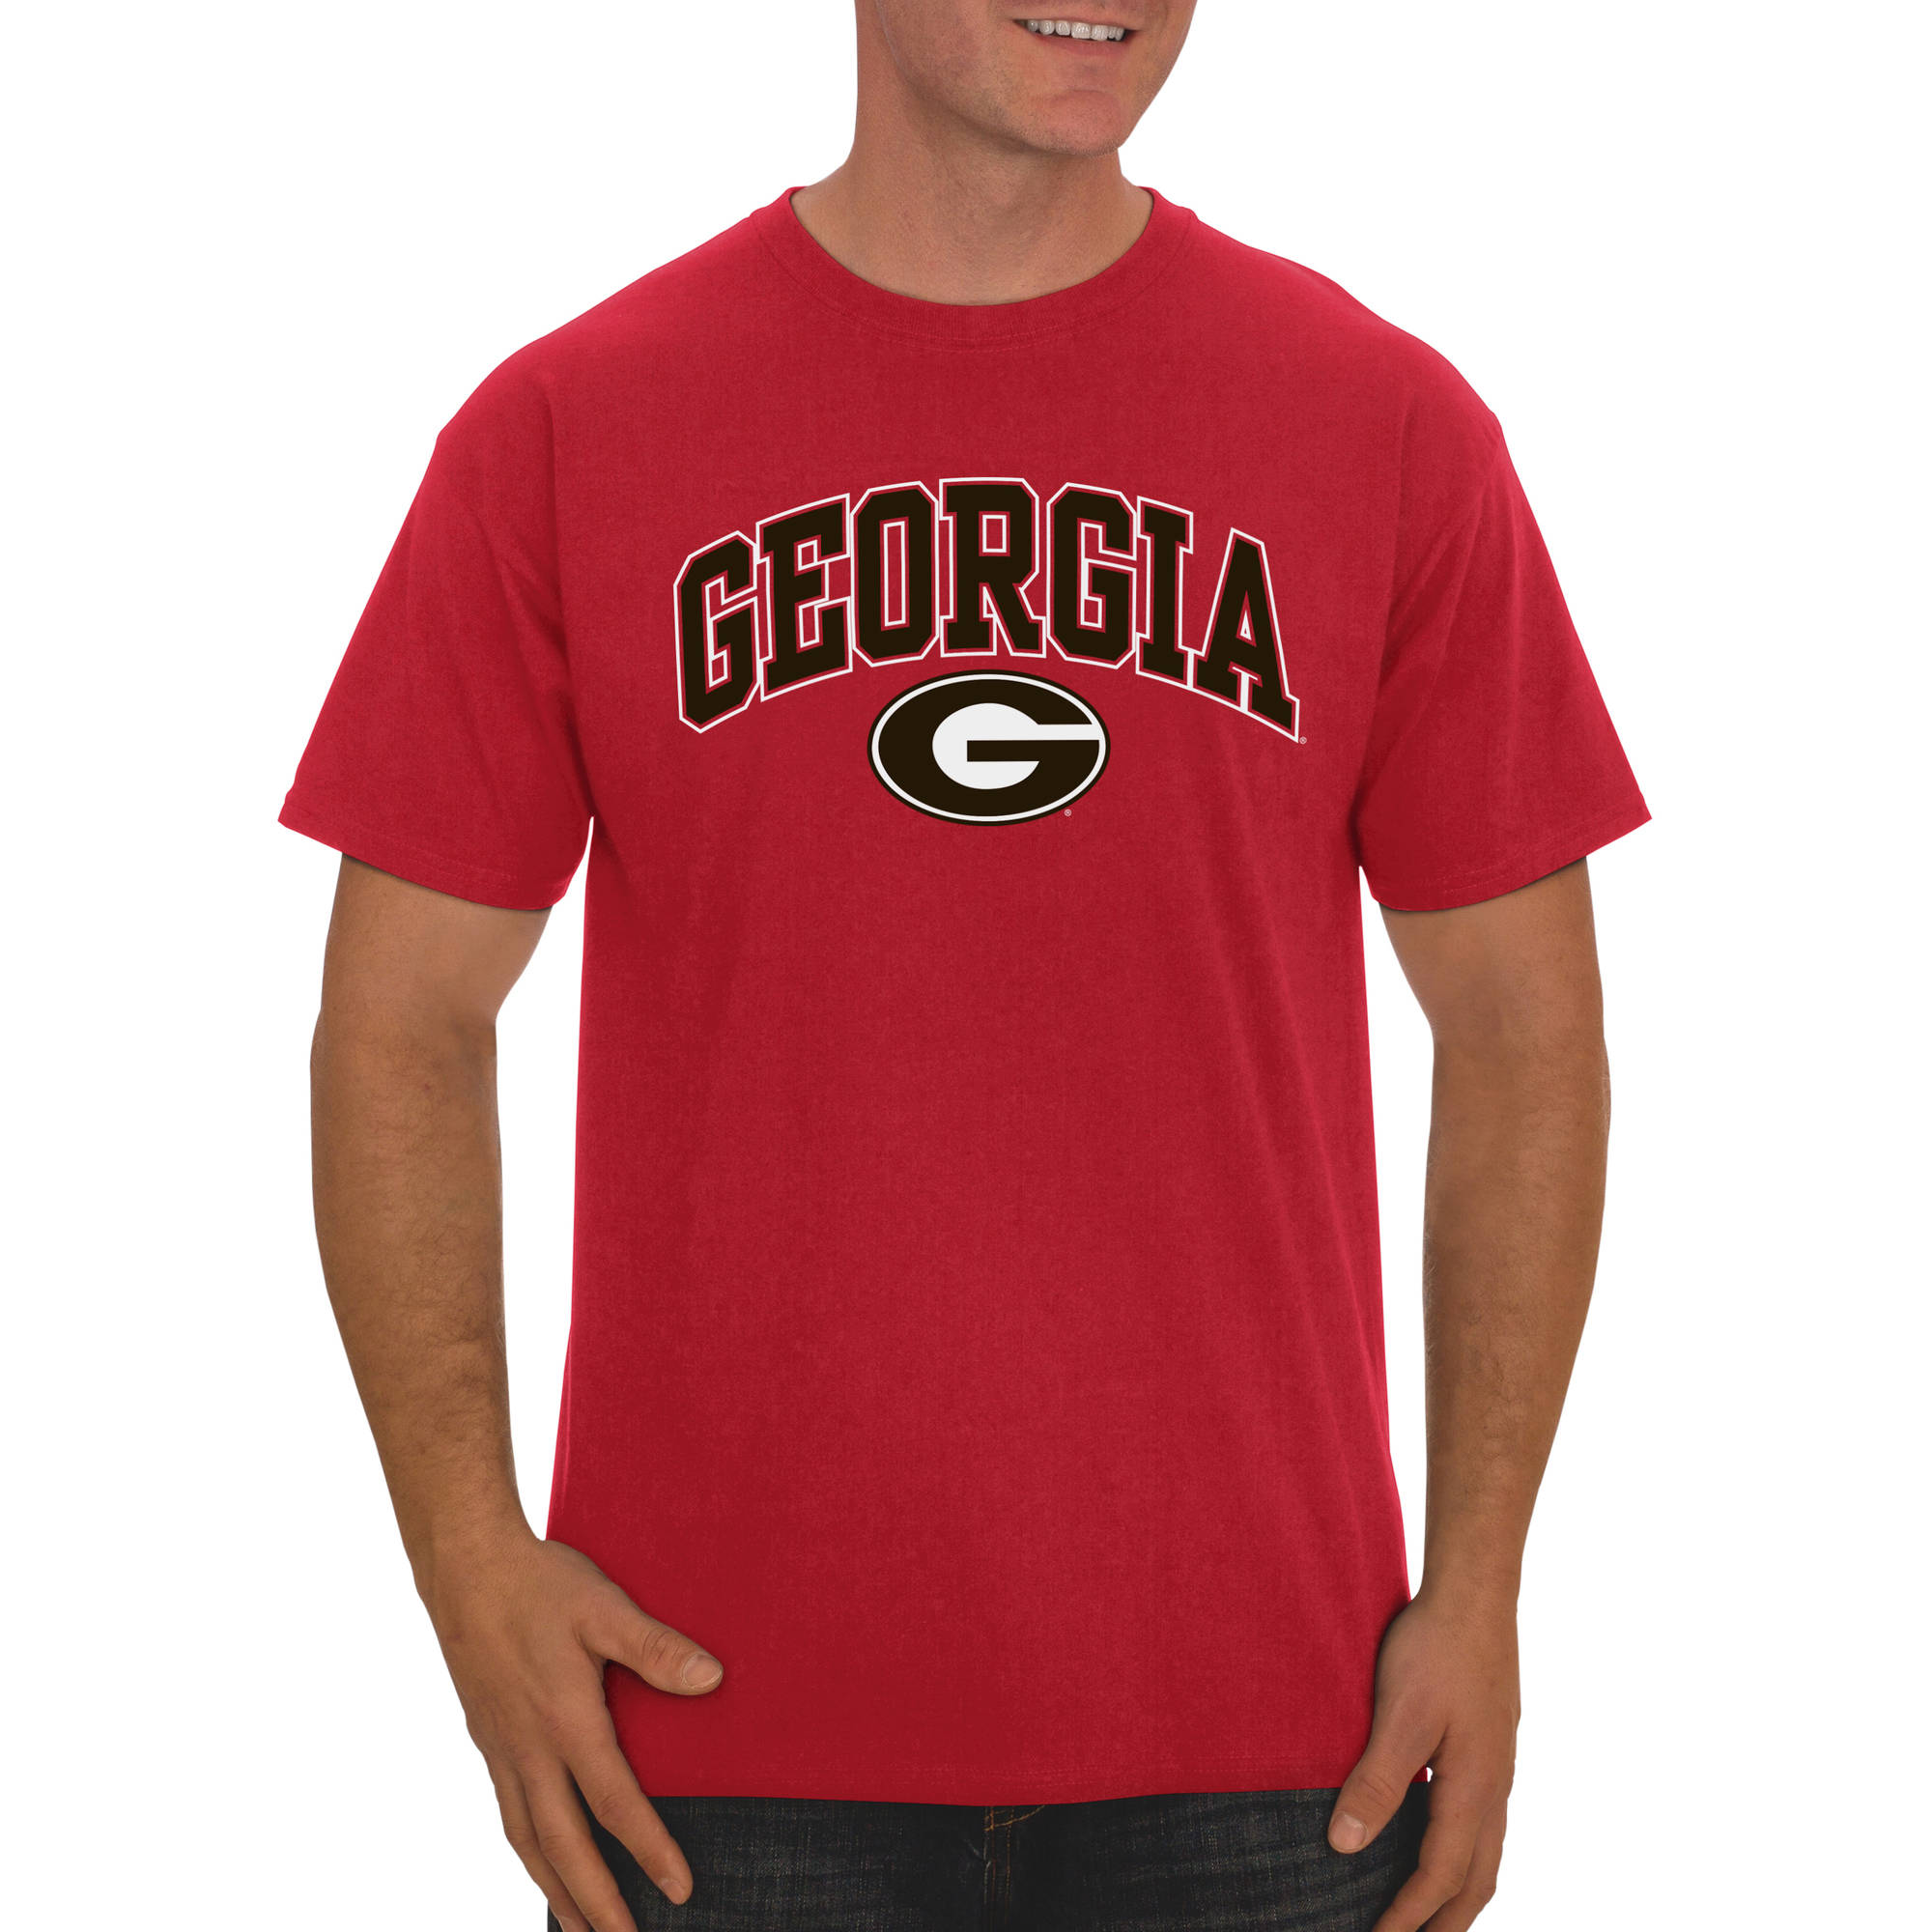 Russell NCAA Georgia Bulldogs, Men's Classic Cotton T-Shirt